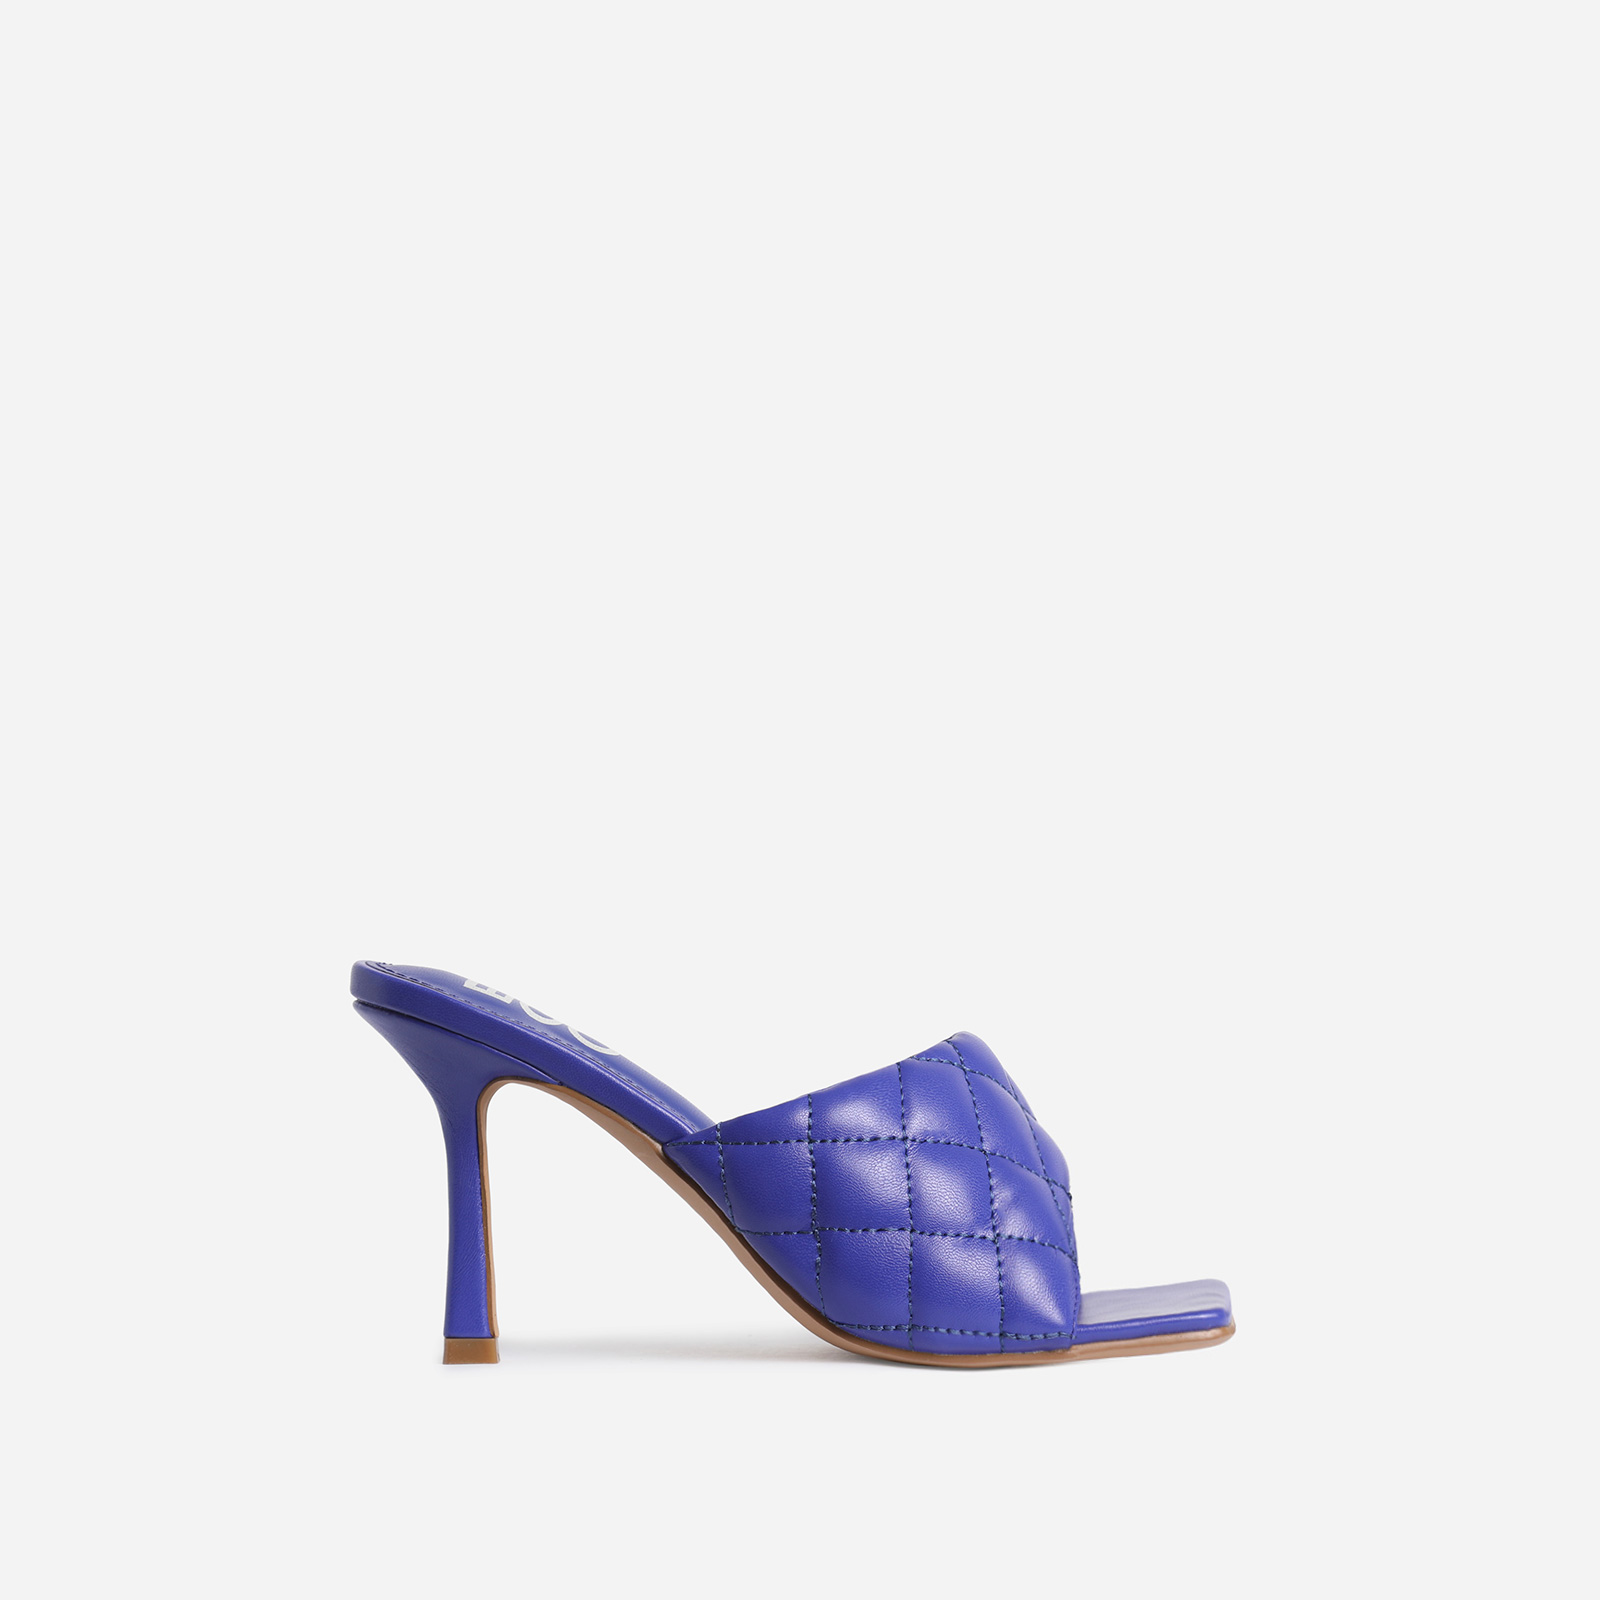 Tropez Square Toe Quilted Heel Mule In Purple Faux Leather